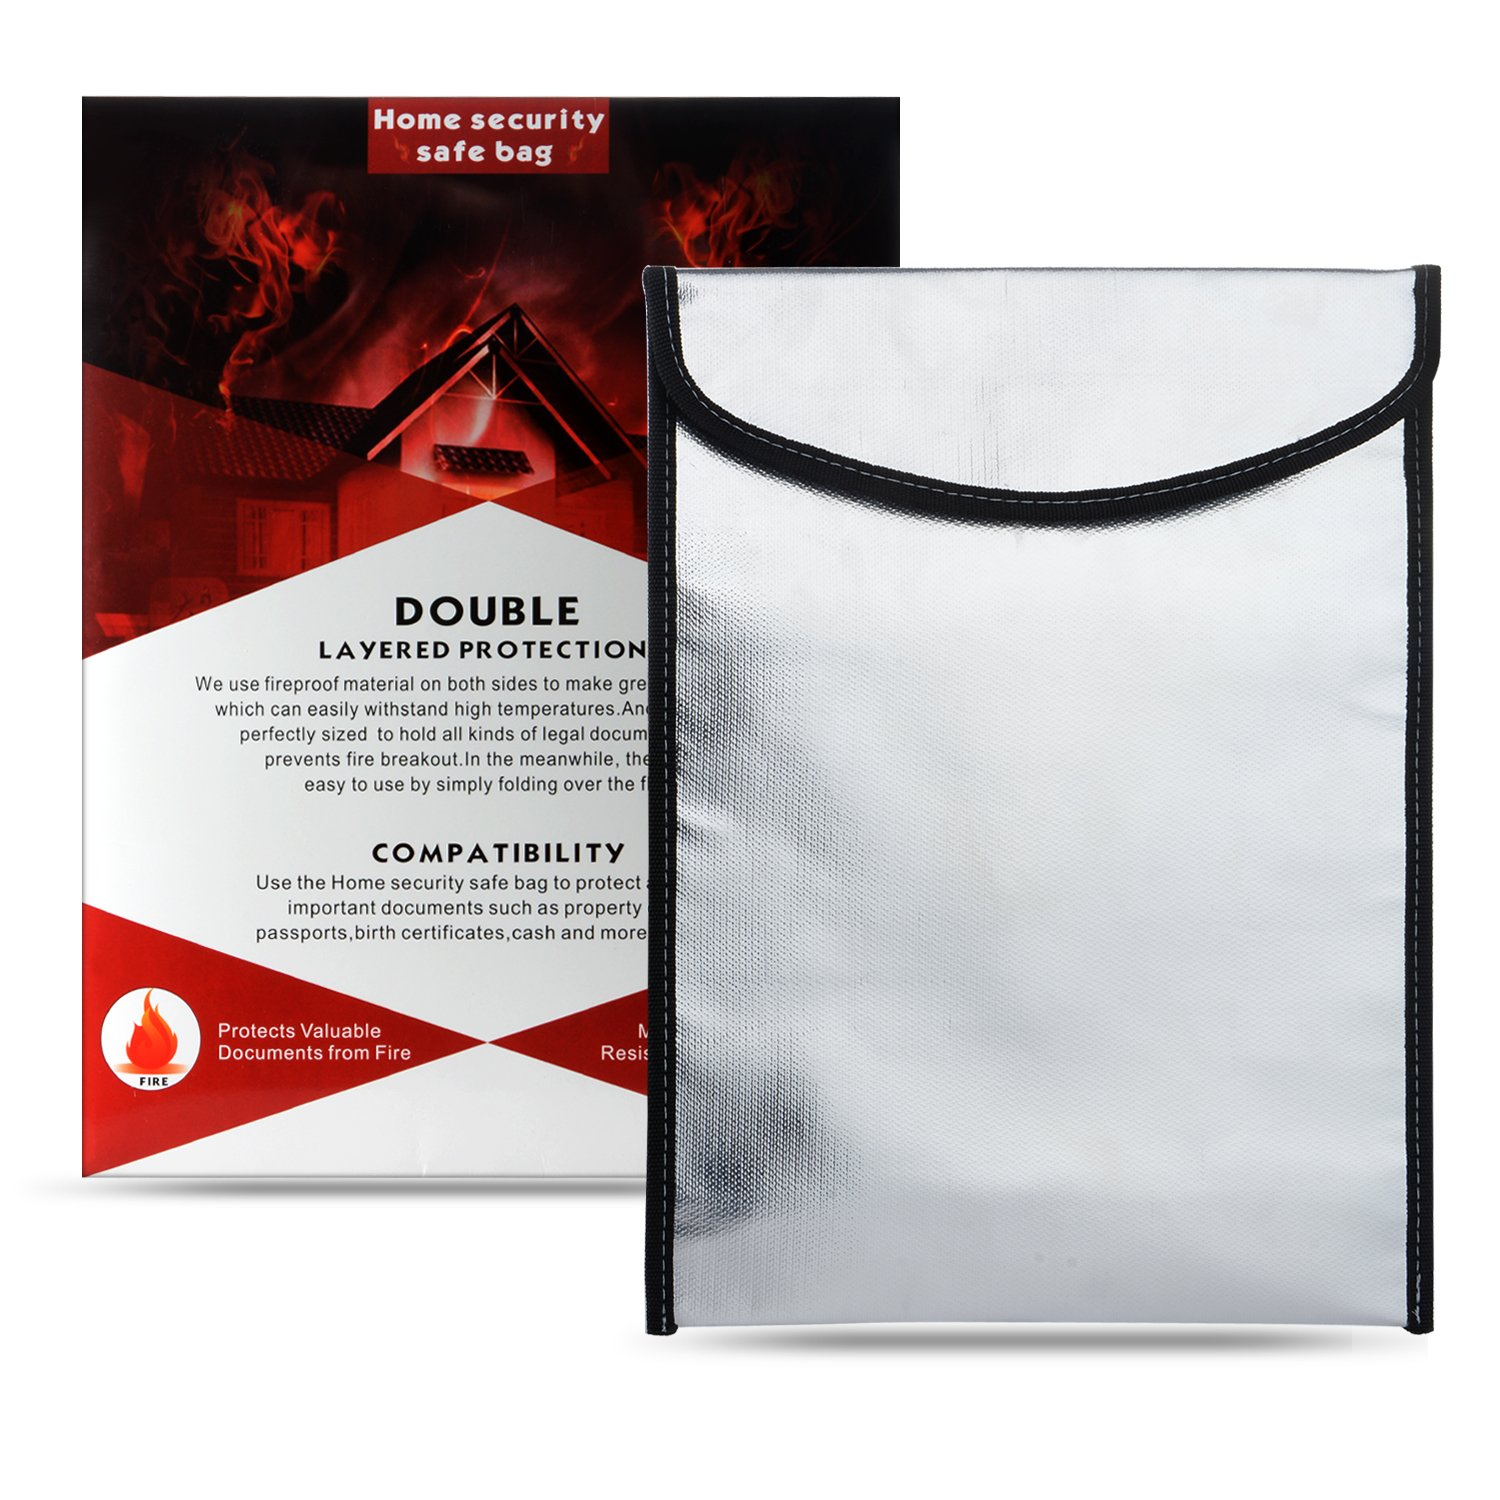 Fire Resistant Waterproof Document Bag, 13'' x 10'' Non-itchy Heavy Duty Fireproof Thread Document Bag for Money, Birth Certificate, Passport, Titles, Jewelry & Important Documents